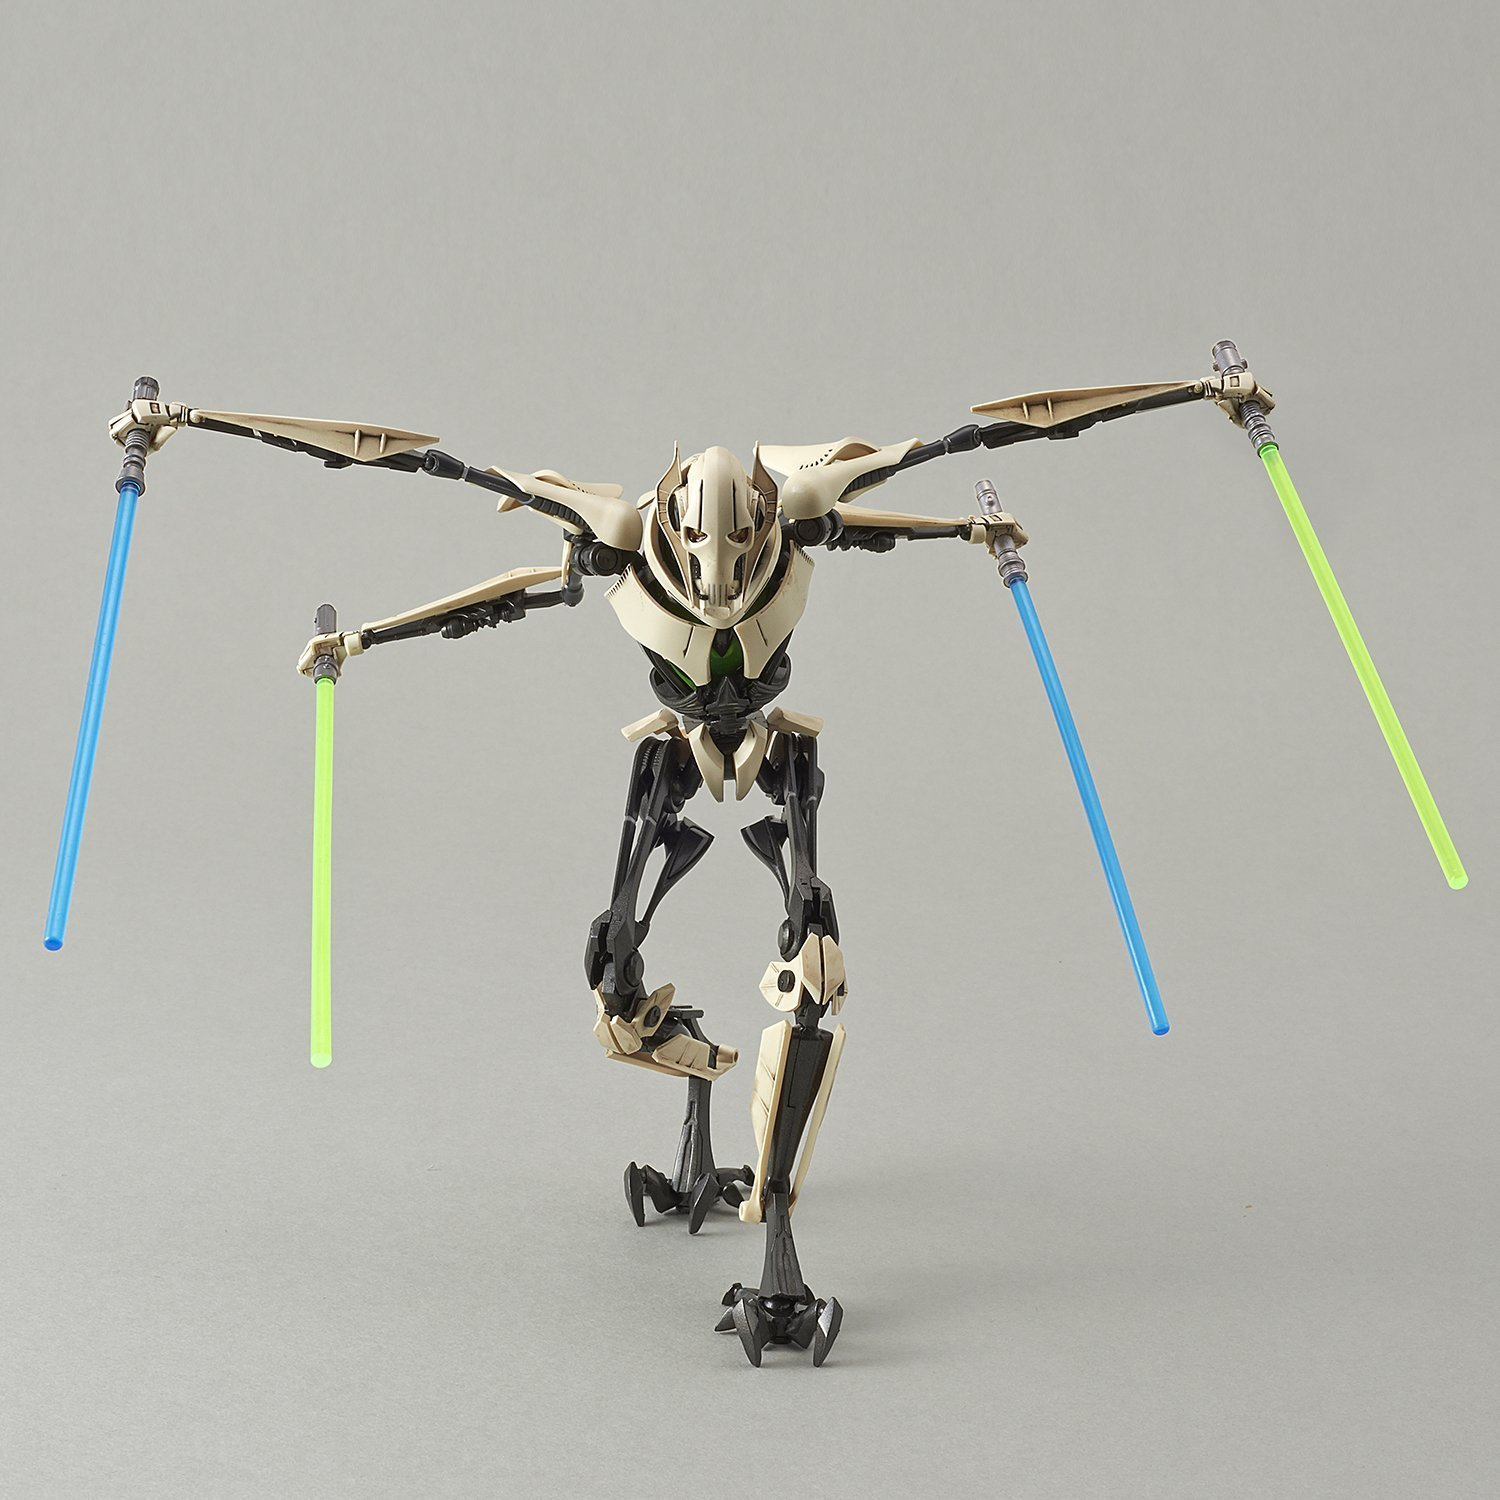 Star Wars 1/12 General Grievous - Scale Model Kit image